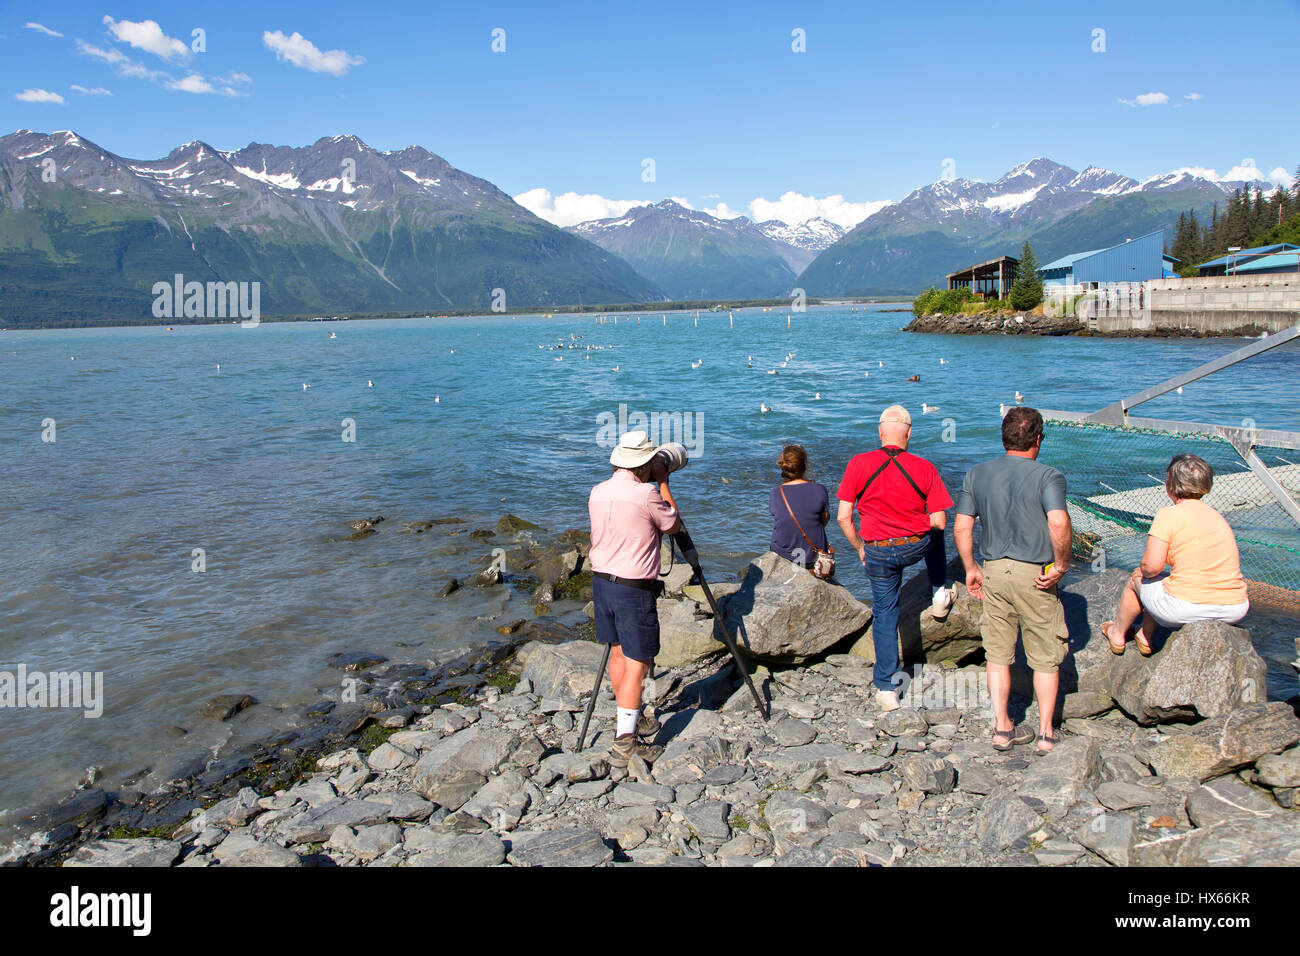 Visitors viewing & photographing sea lions & sea gulls, Salmon spawning, Chugach Mountain Range with glaciers - Stock Image